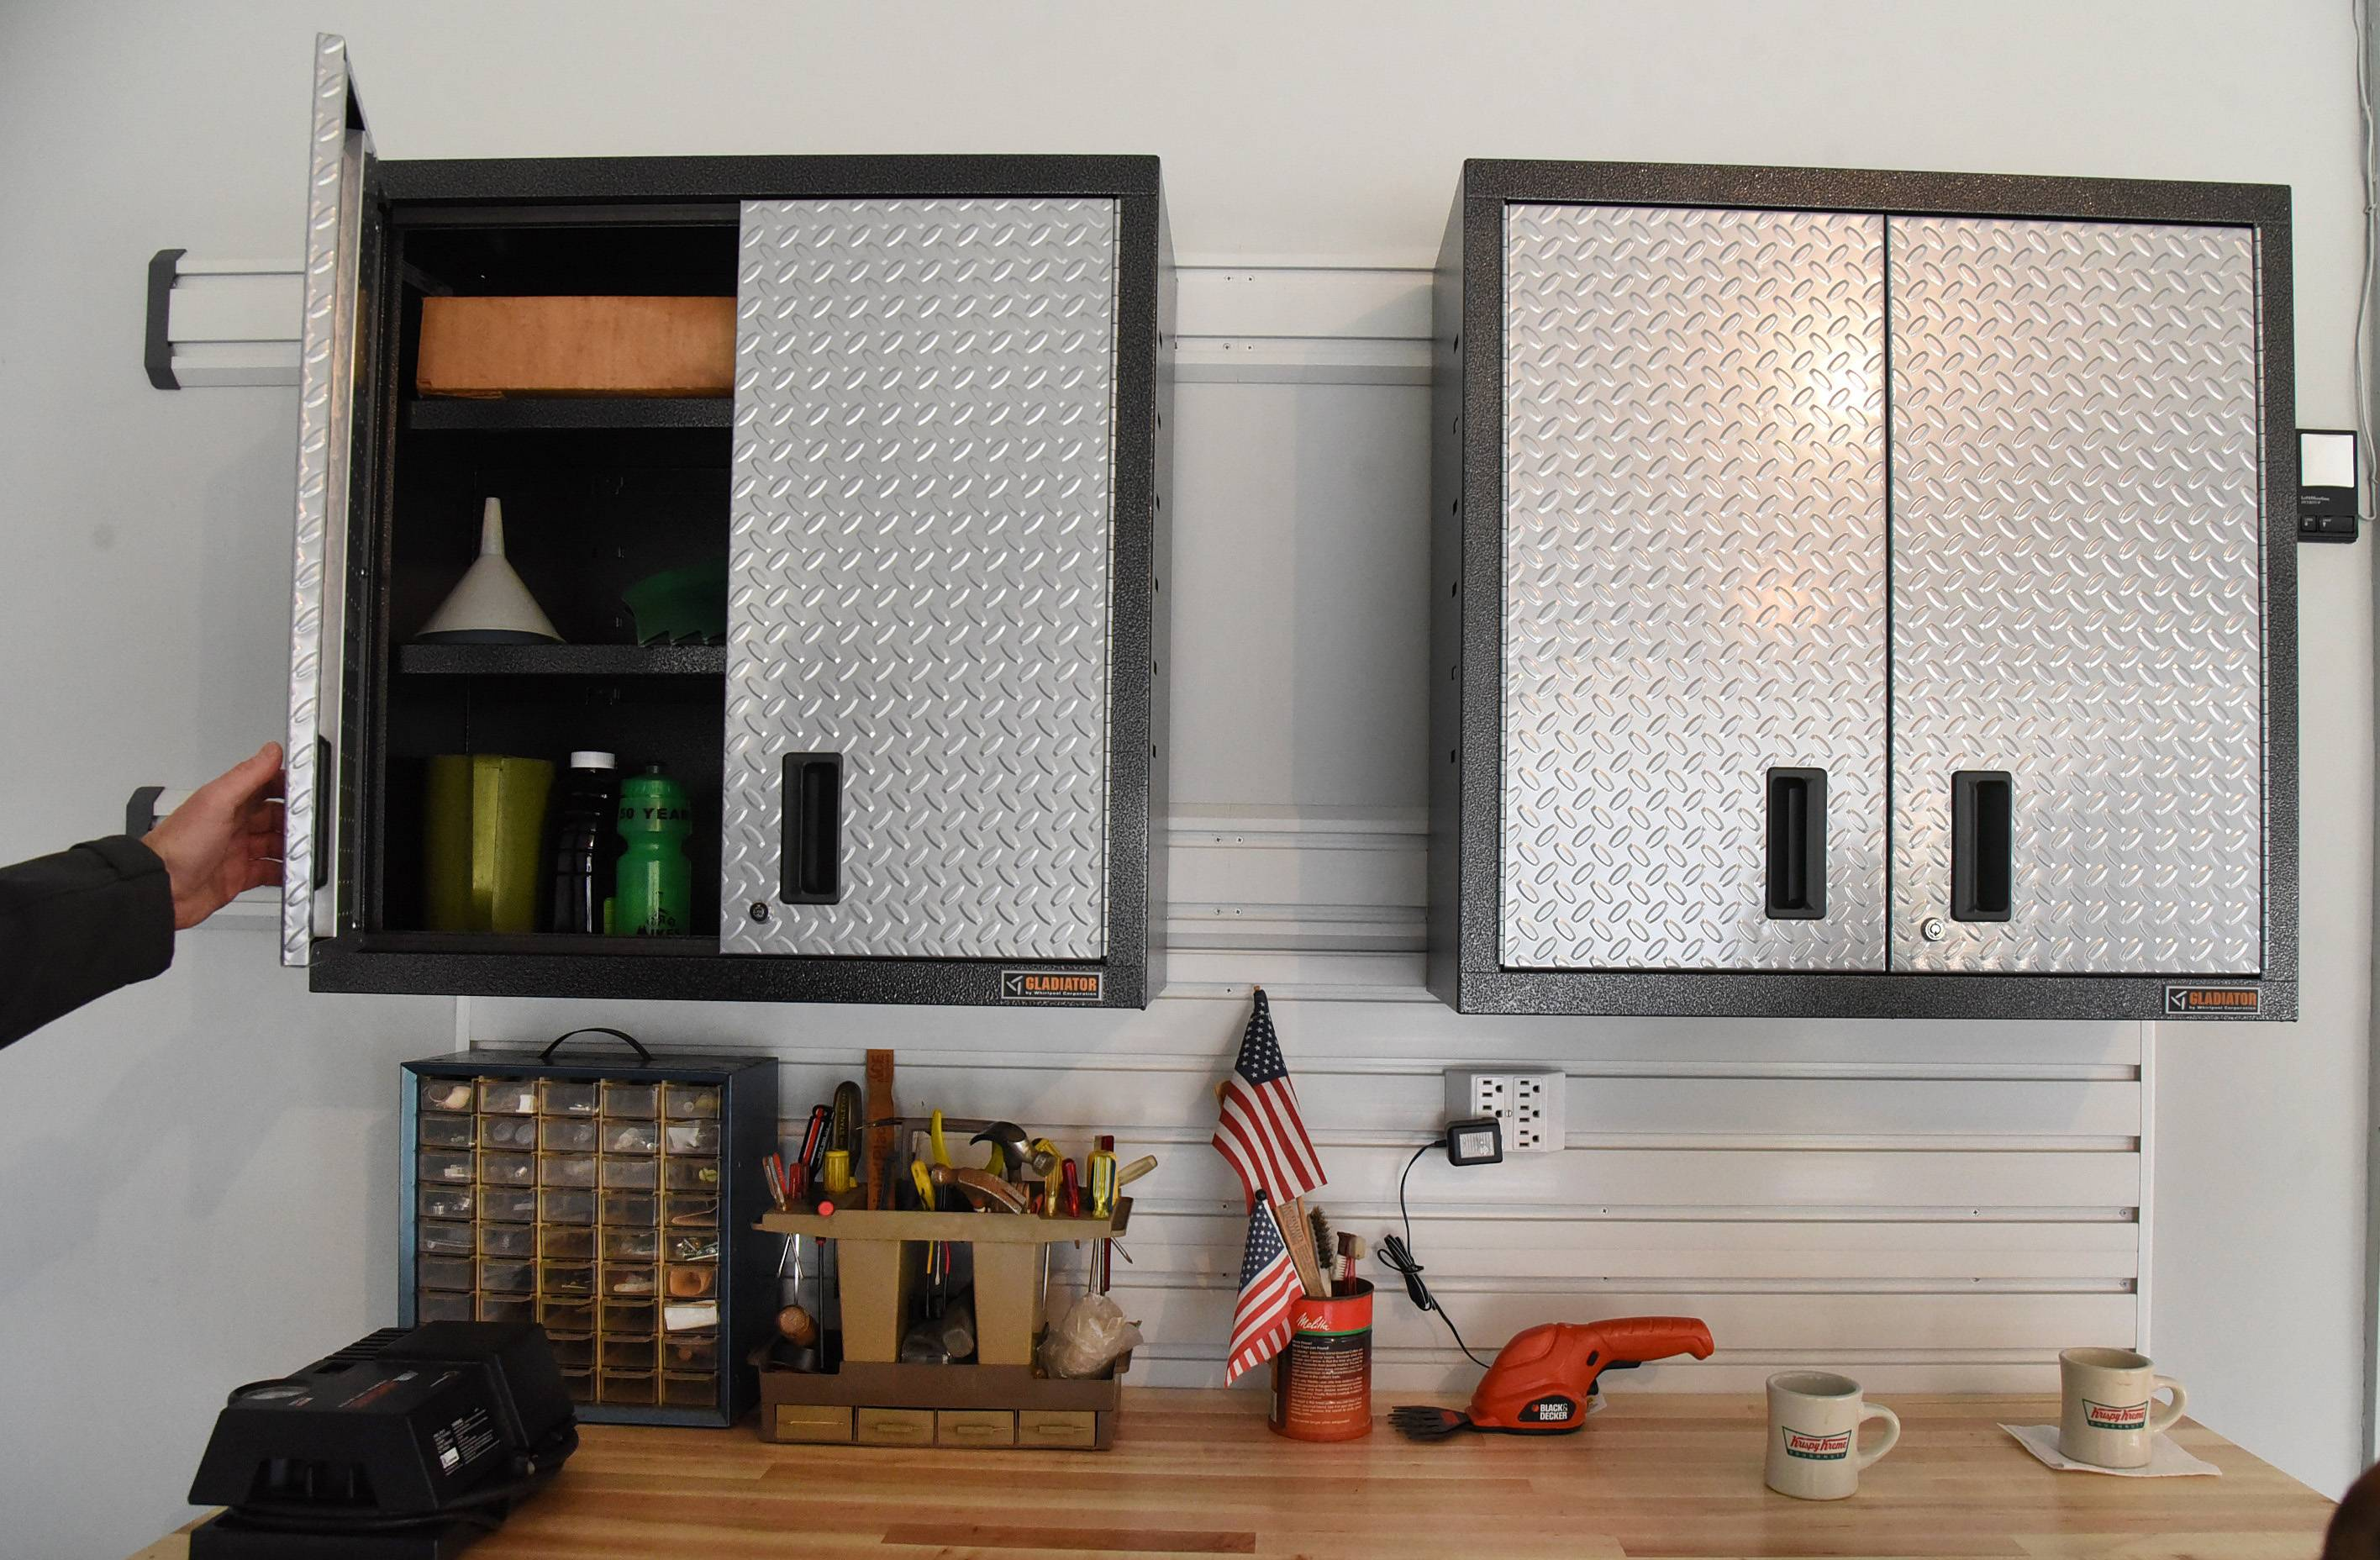 New cabinets in Gary and Susan Heitsch's garage make organizing much easier.